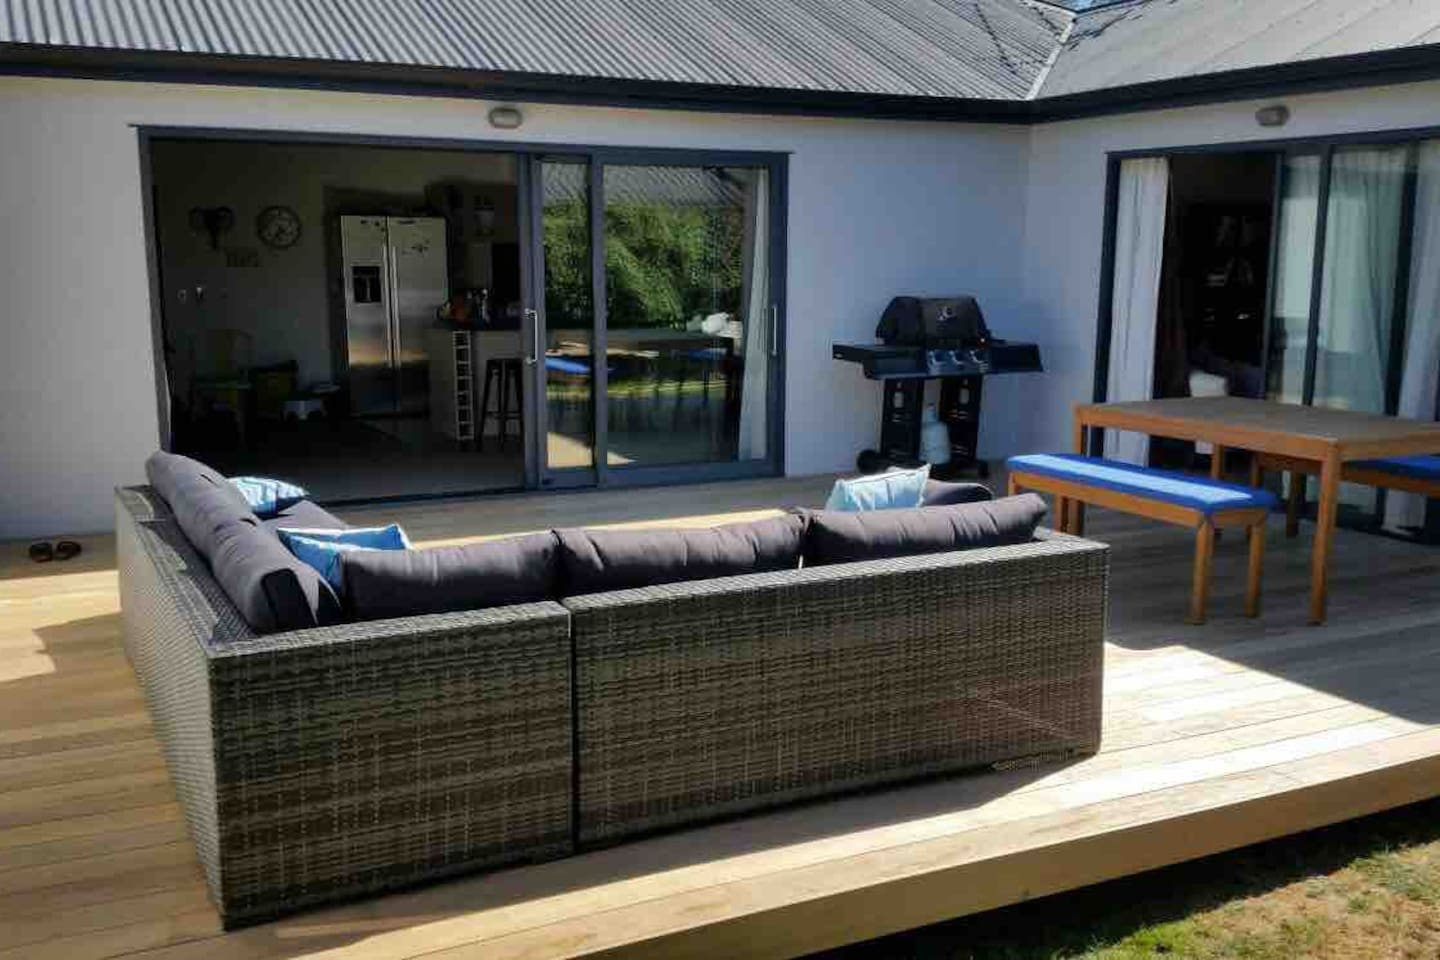 Sunny private deck area perfect for outside dining and BBQs.